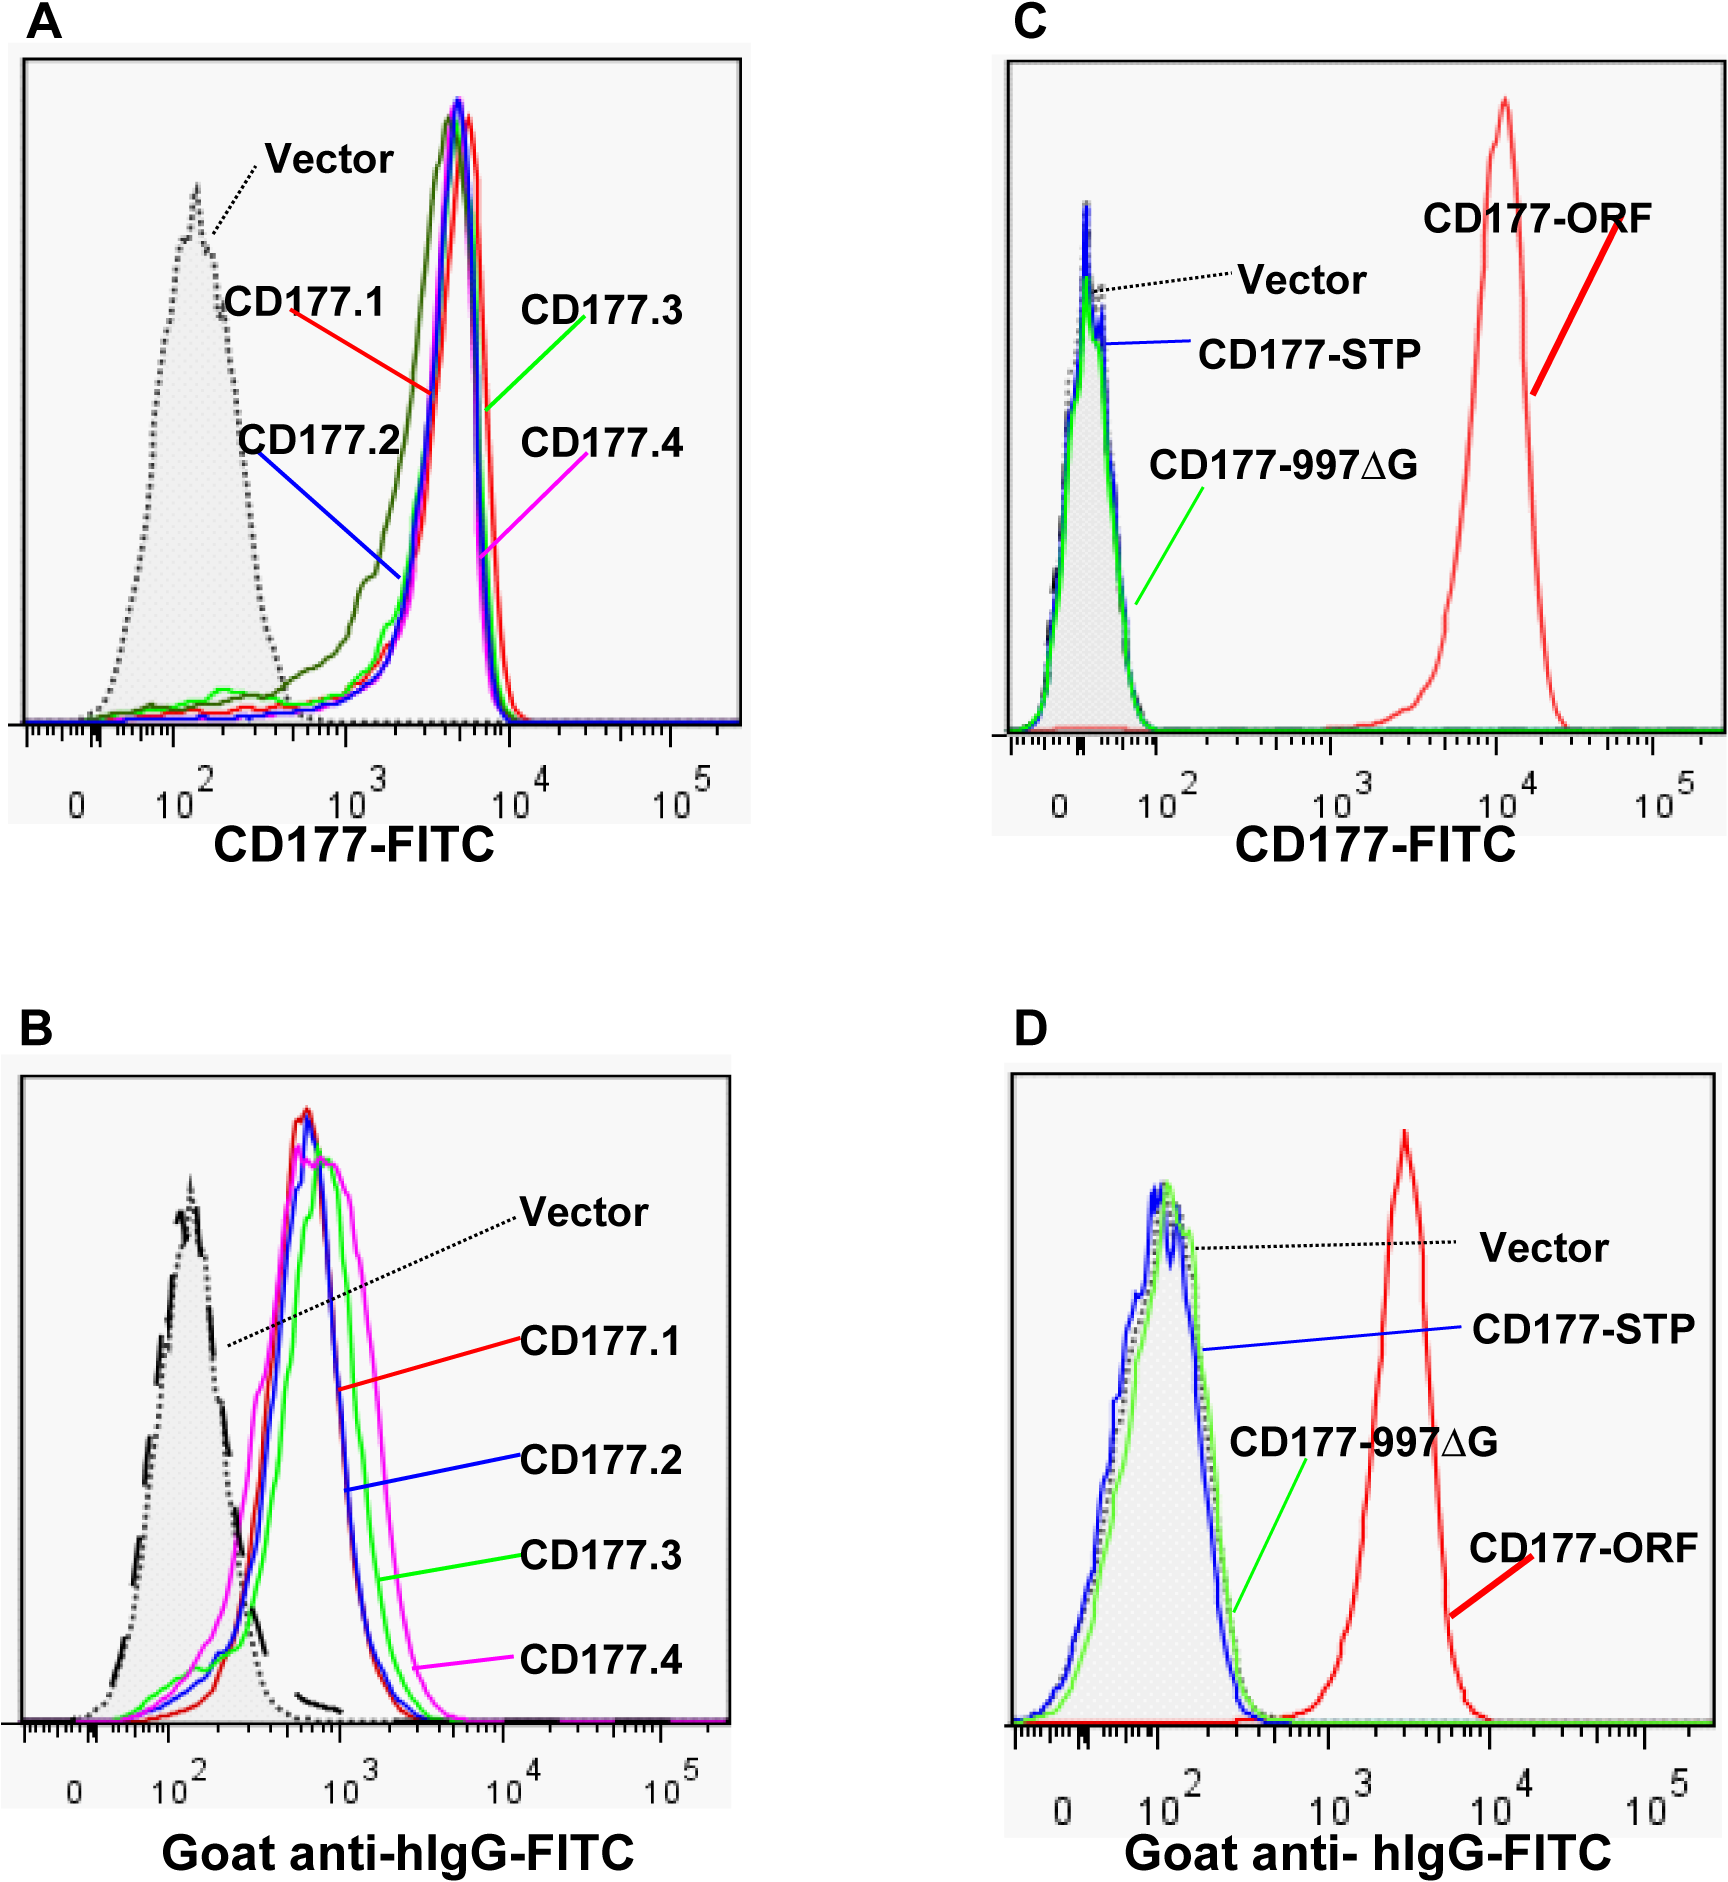 Effect of <i>CD177</i> SNPs or mutation on HNA-2 expression and HNA-2 alloantibody binding.